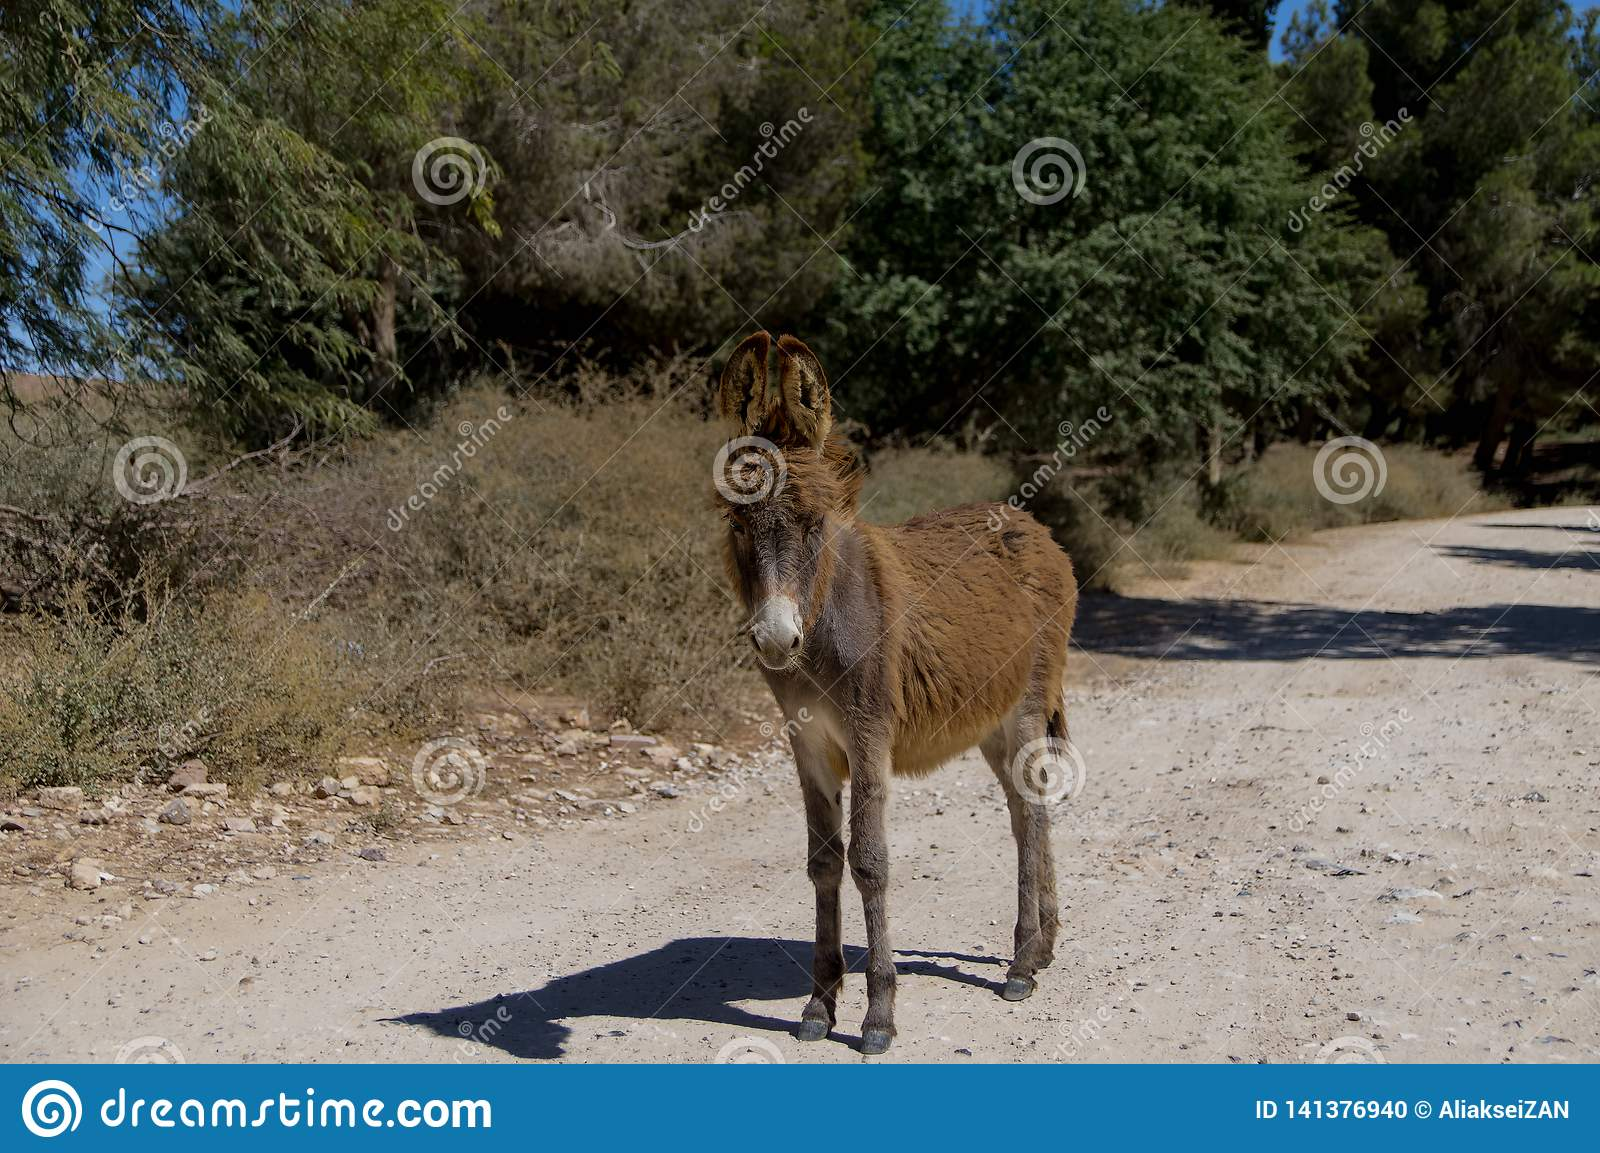 A wild brown donkey stands on the road in the forest